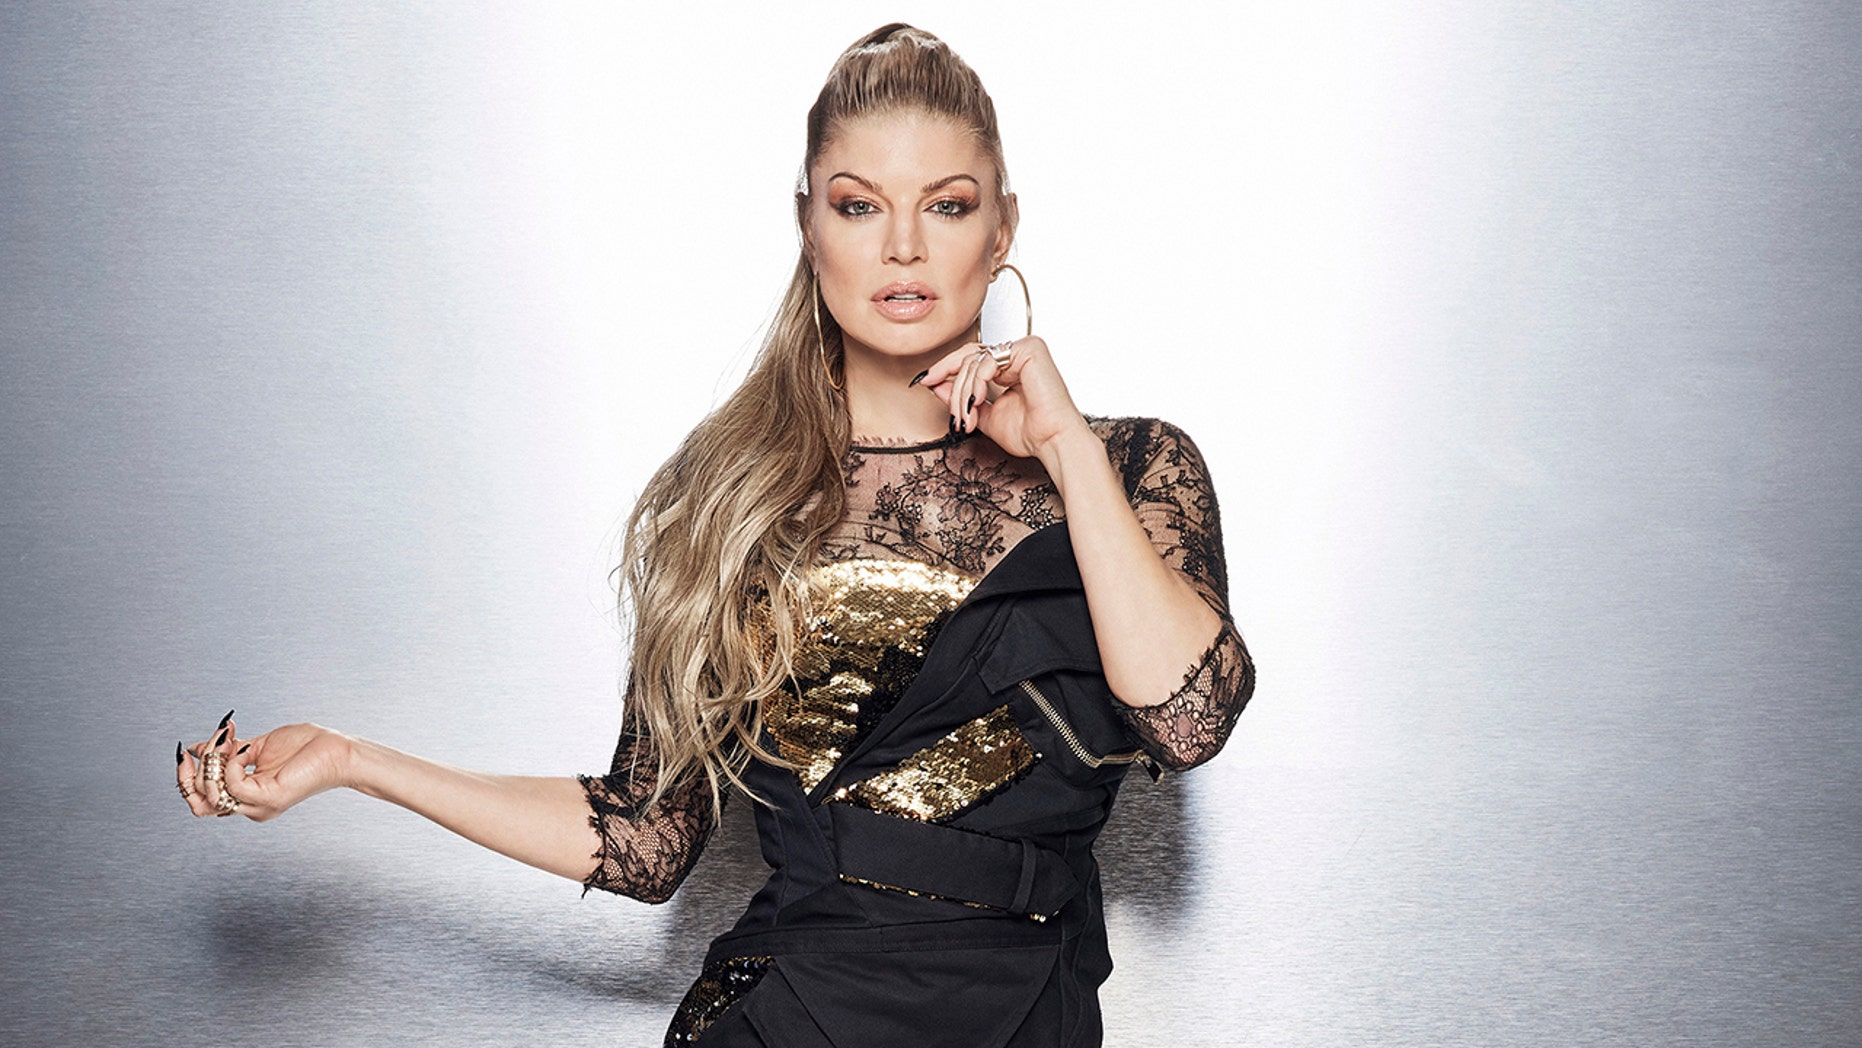 Fergie hosts 'The Four: Battle for Stardom' on Fox on Thursdays.